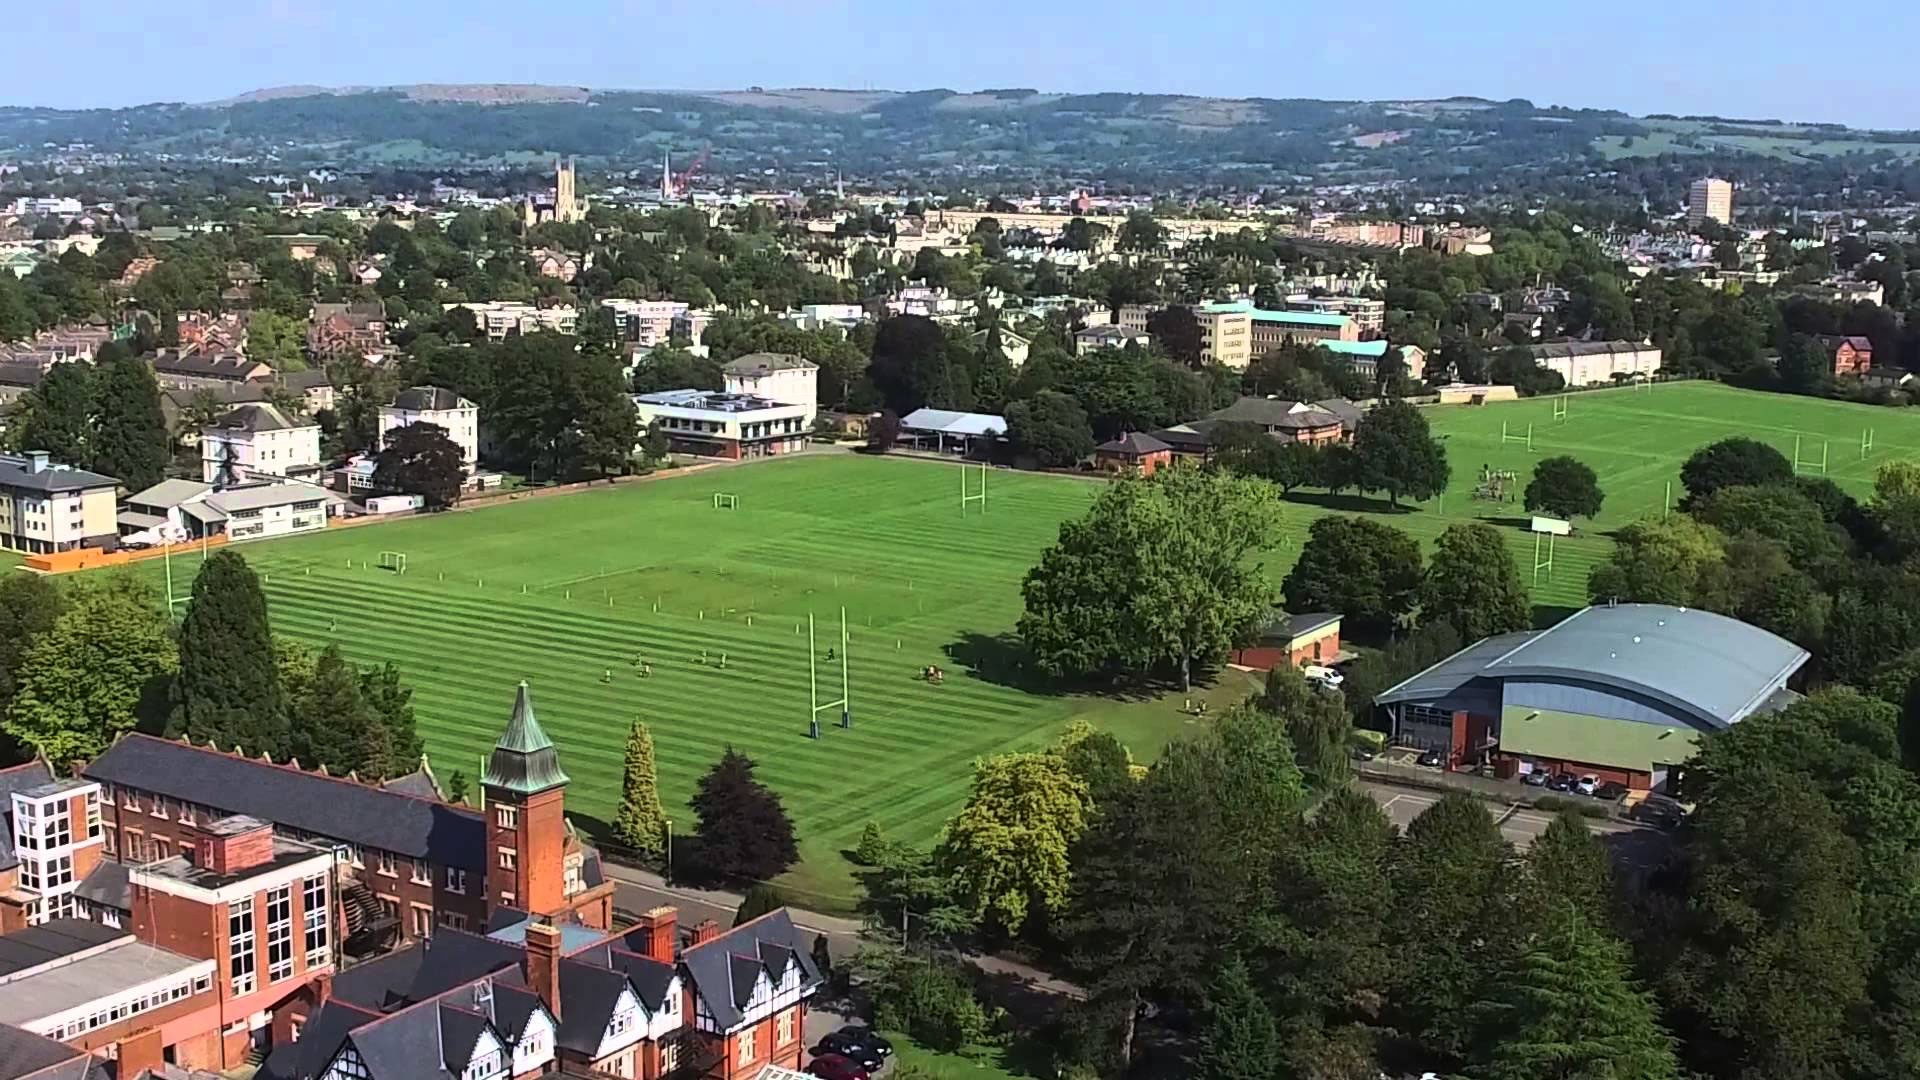 Dean Close School in Cheltenham is looking for a new Director of Cricket